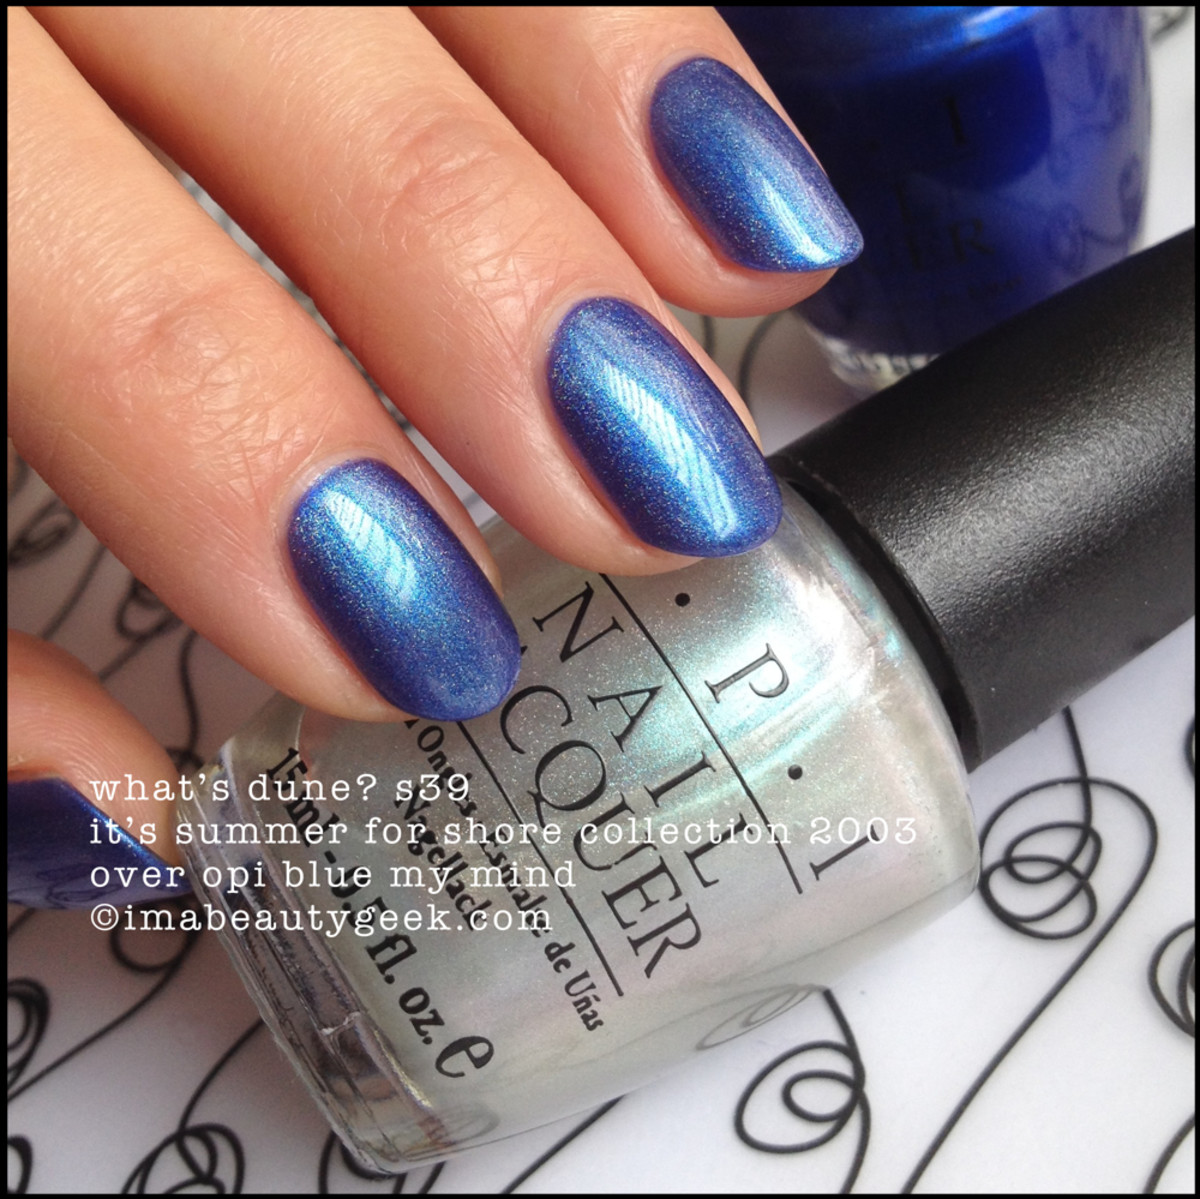 OPI What's Dune? S39 over OPI Blue My Mind B24 BLOPI